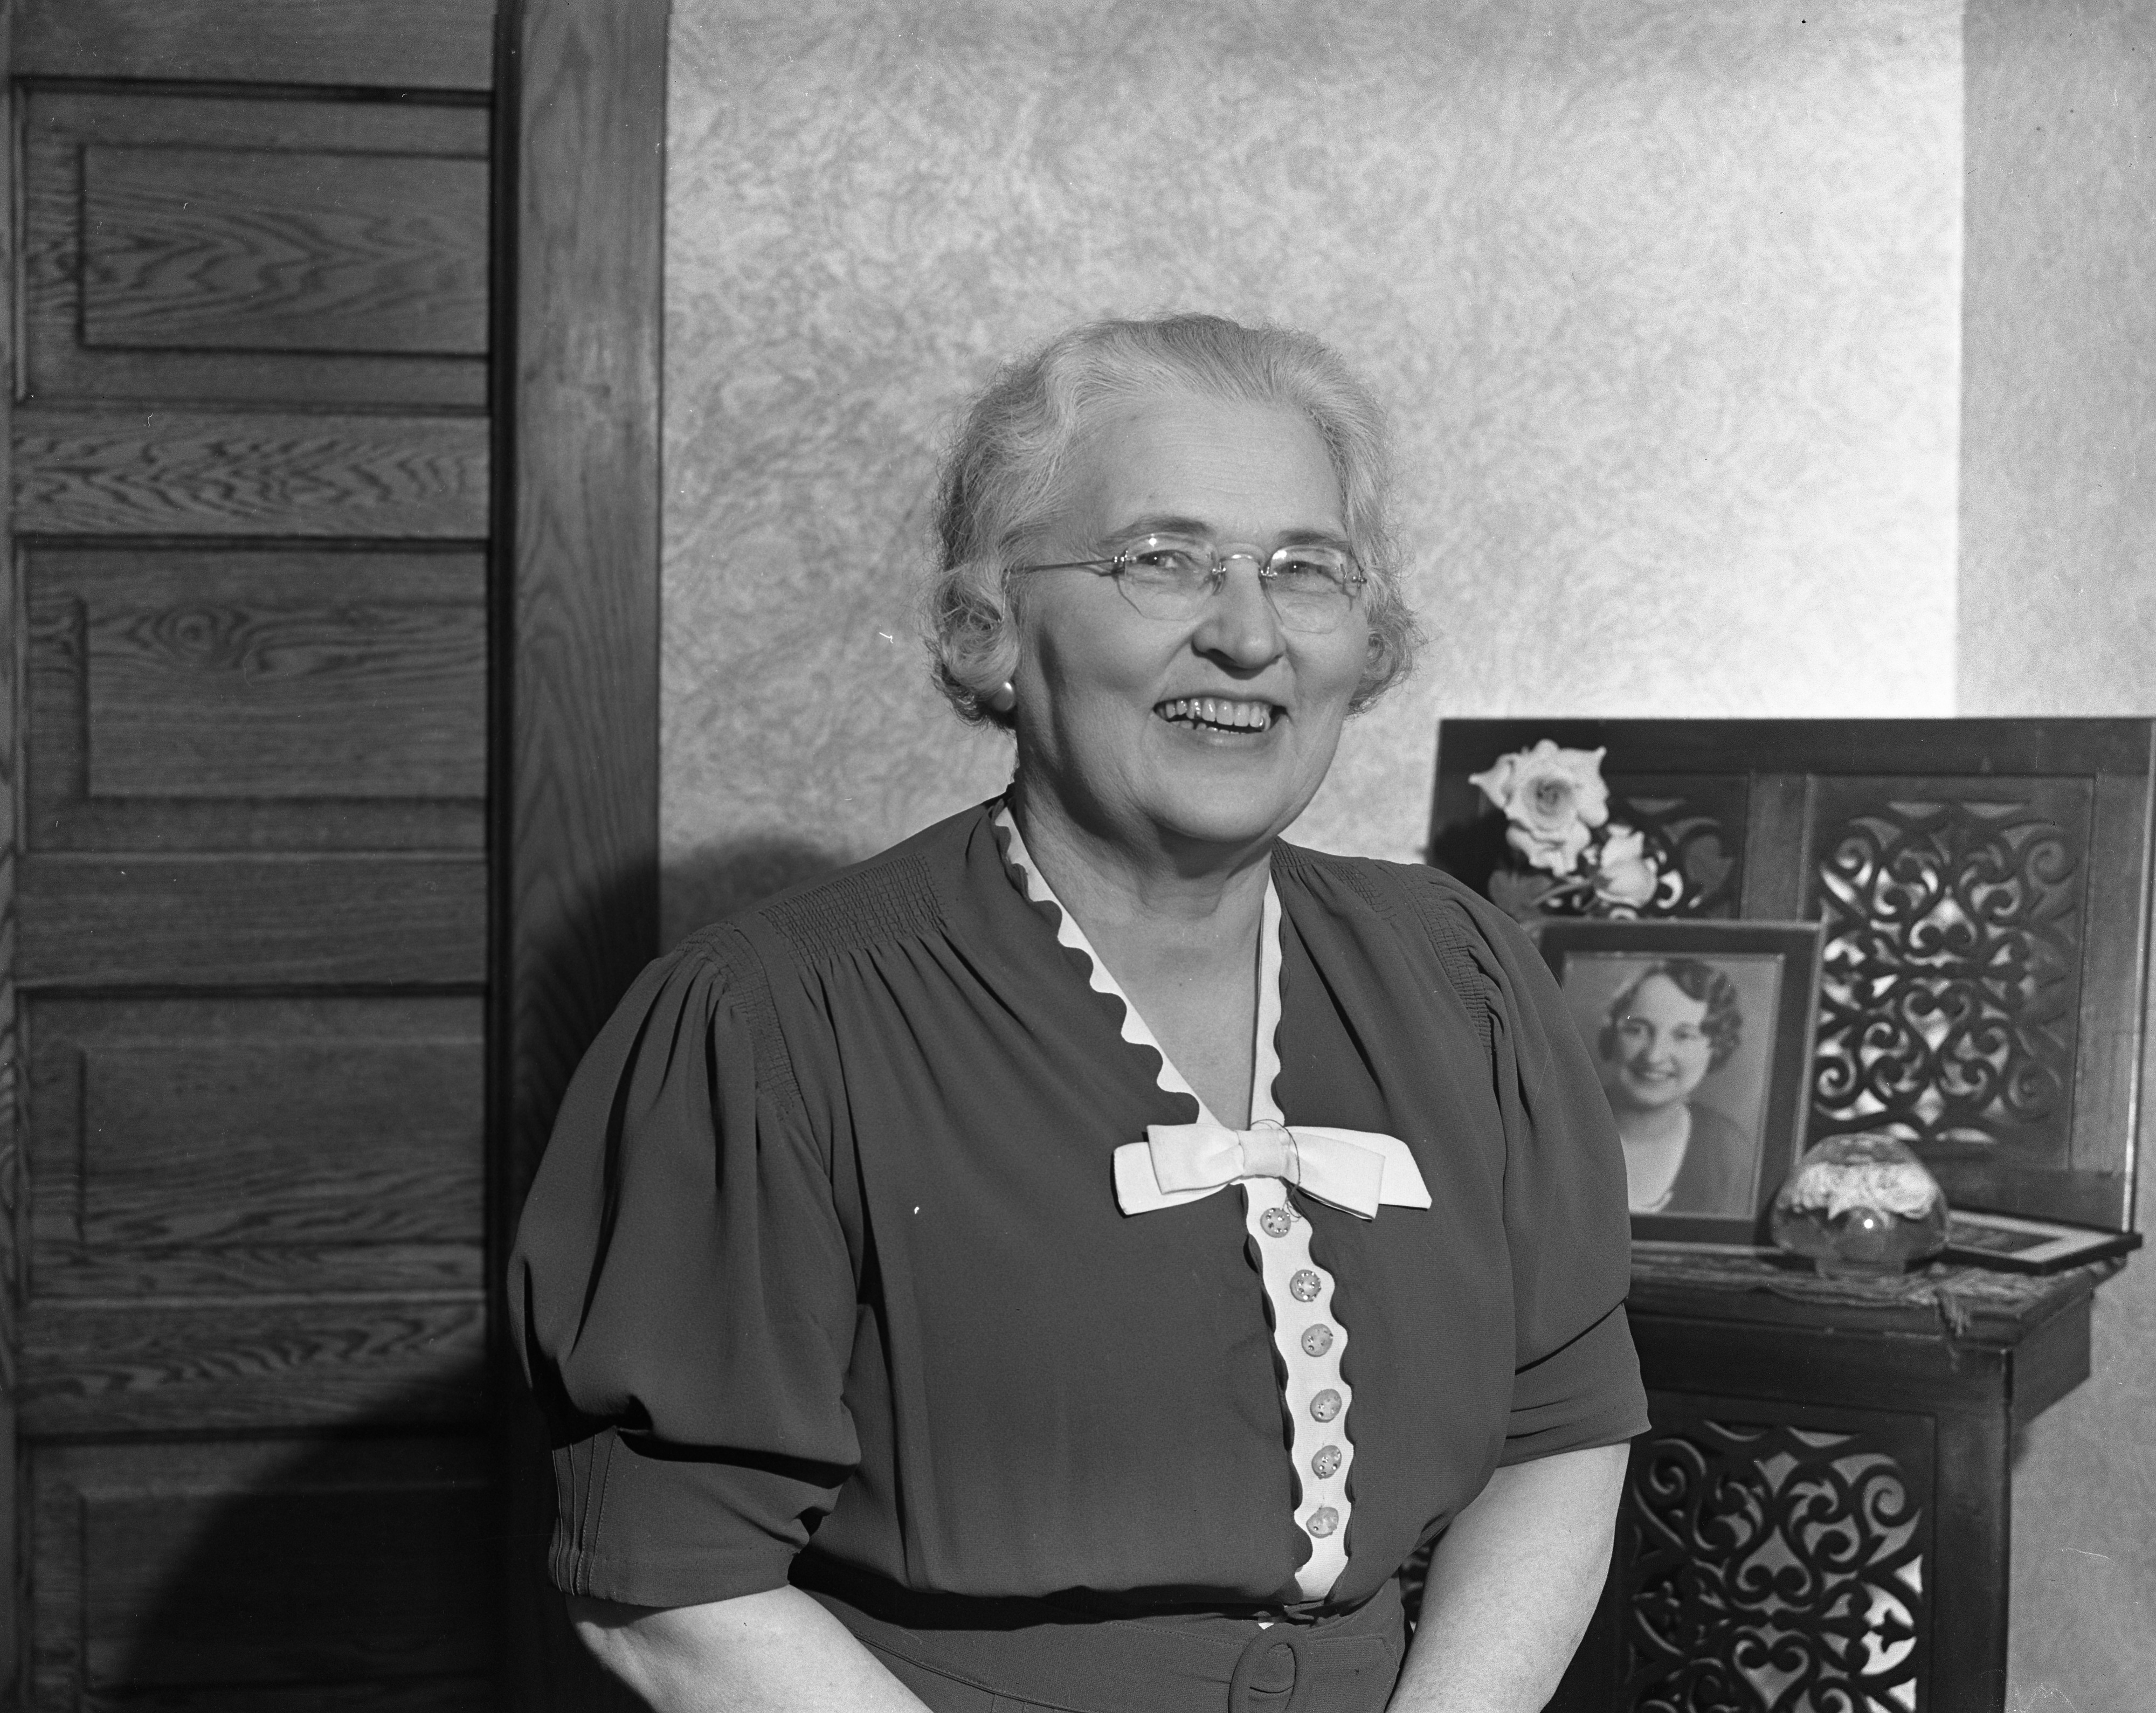 Retiring University of Michigan Cataloguing Chief Lunette Hadley, 1938 image